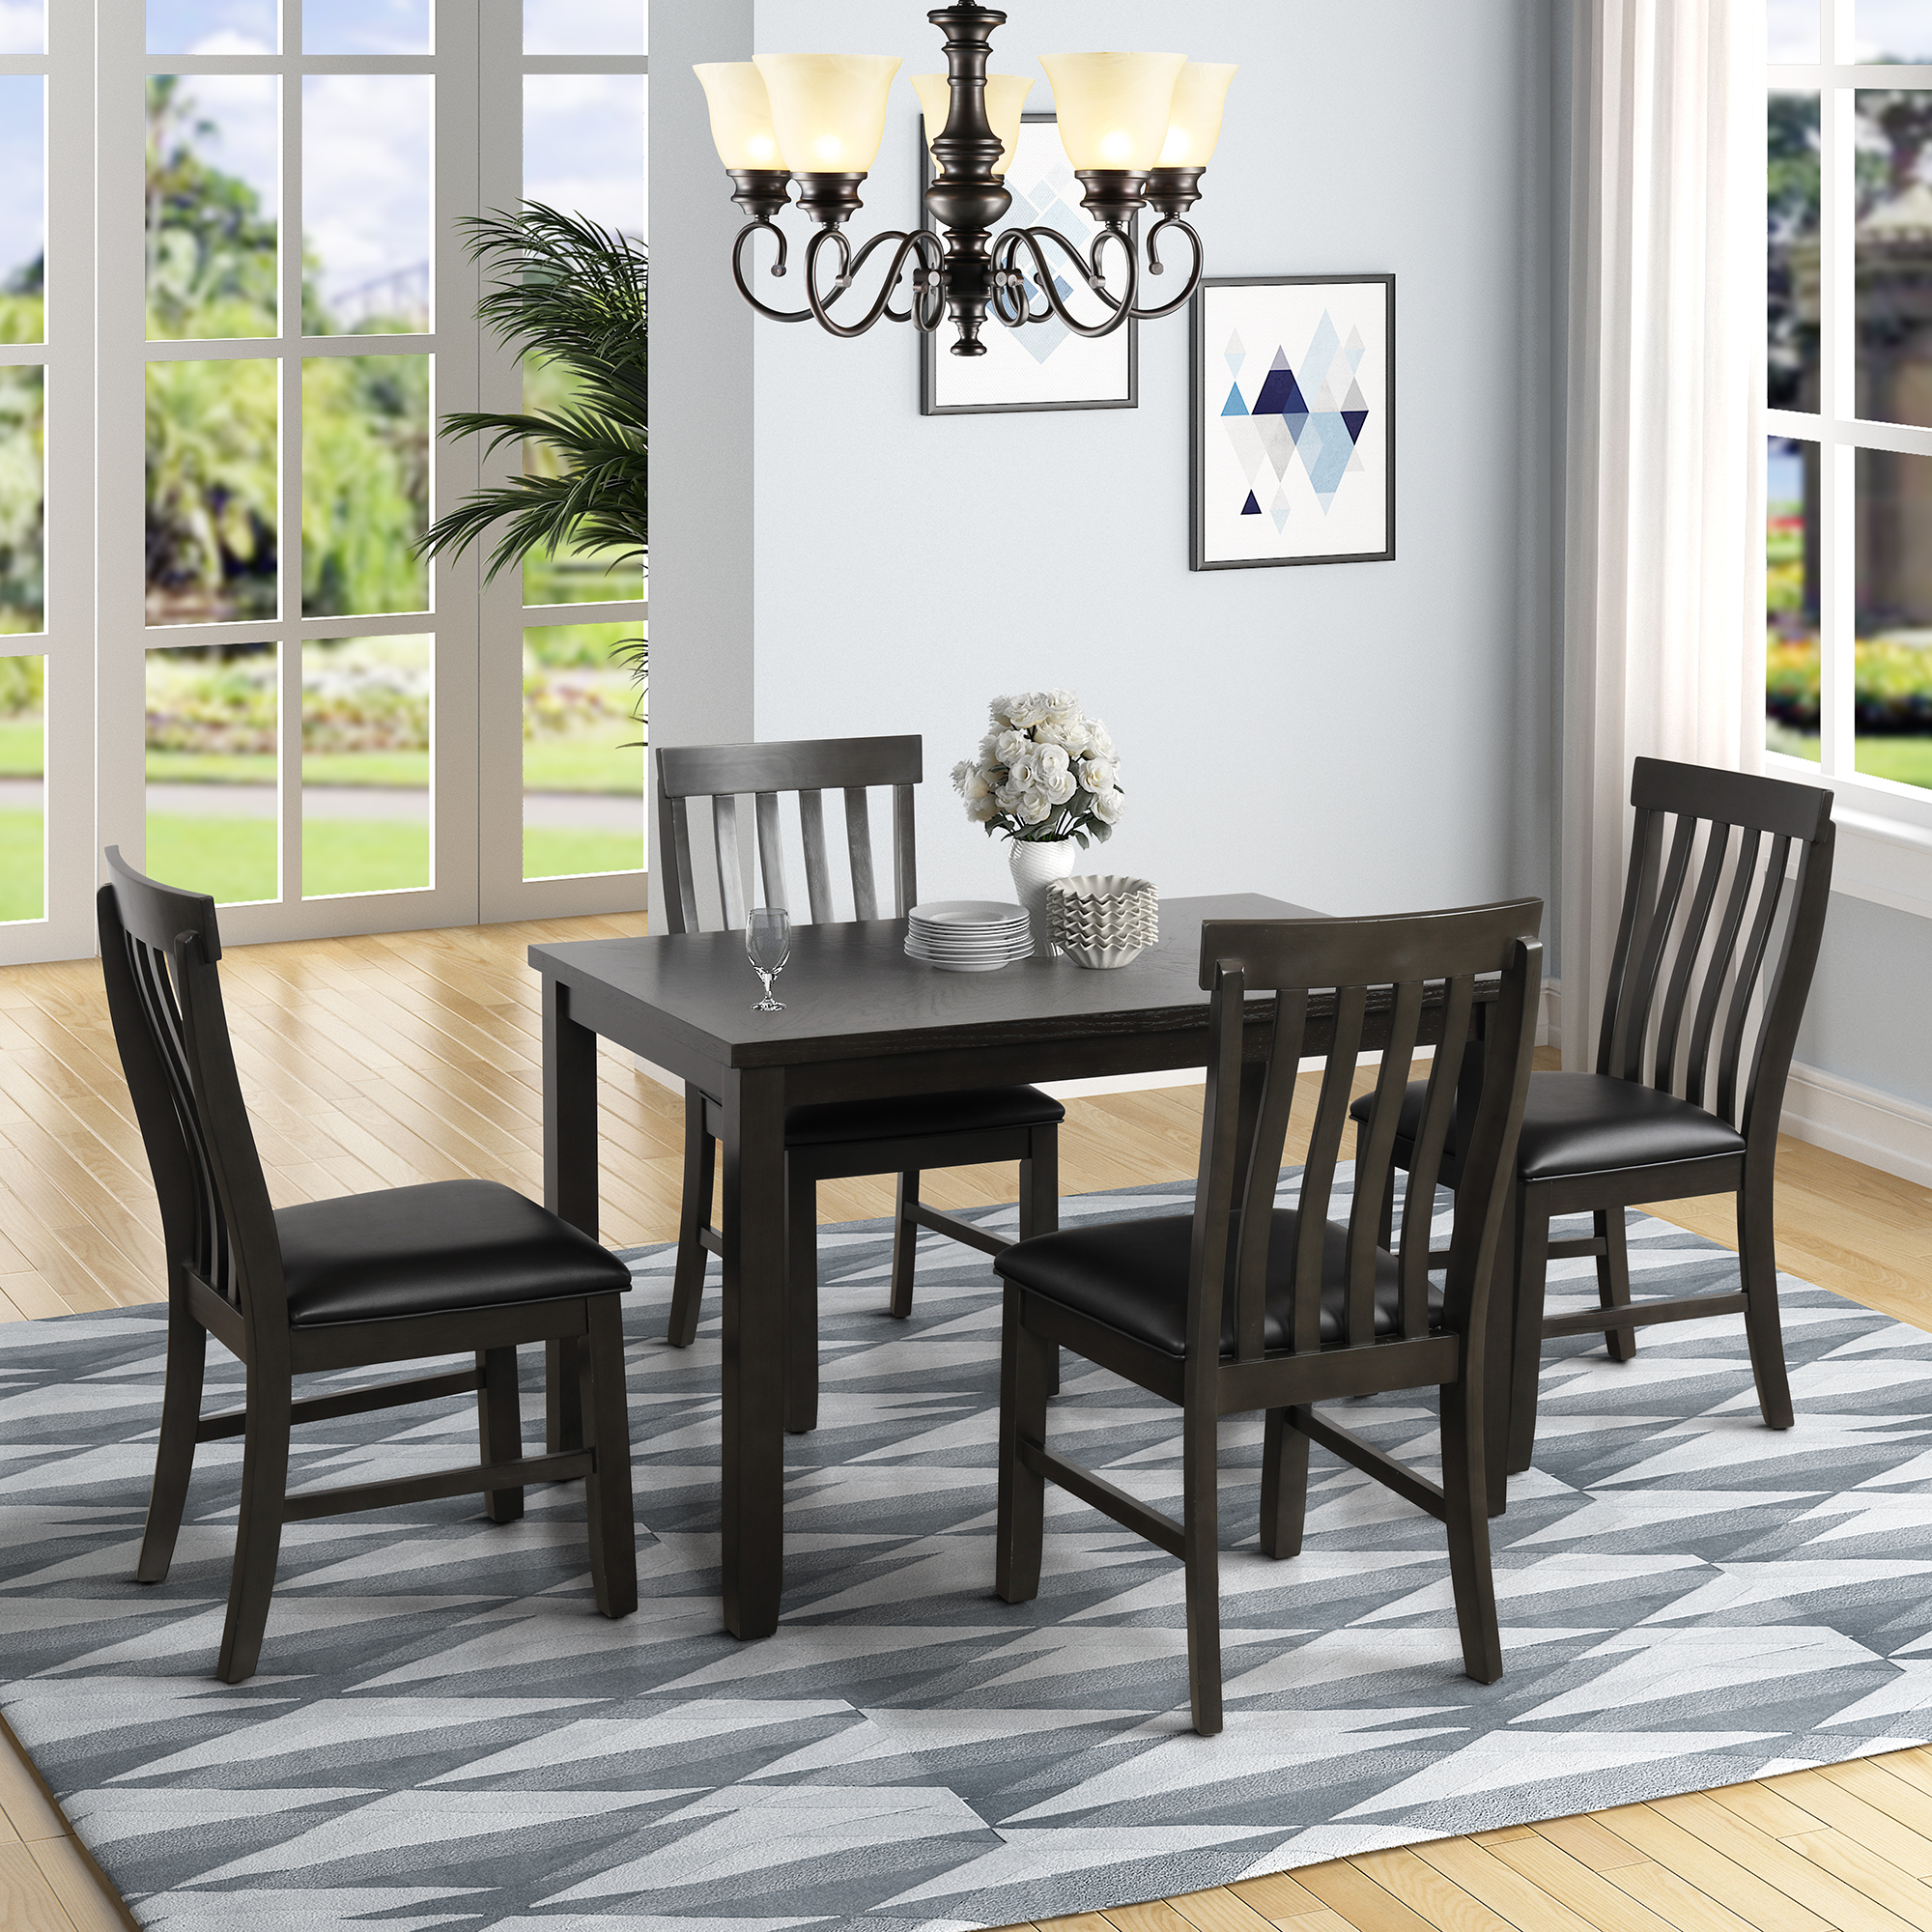 clearance kitchen dining table set 5 piece rectangular on dining room sets on clearance id=28325